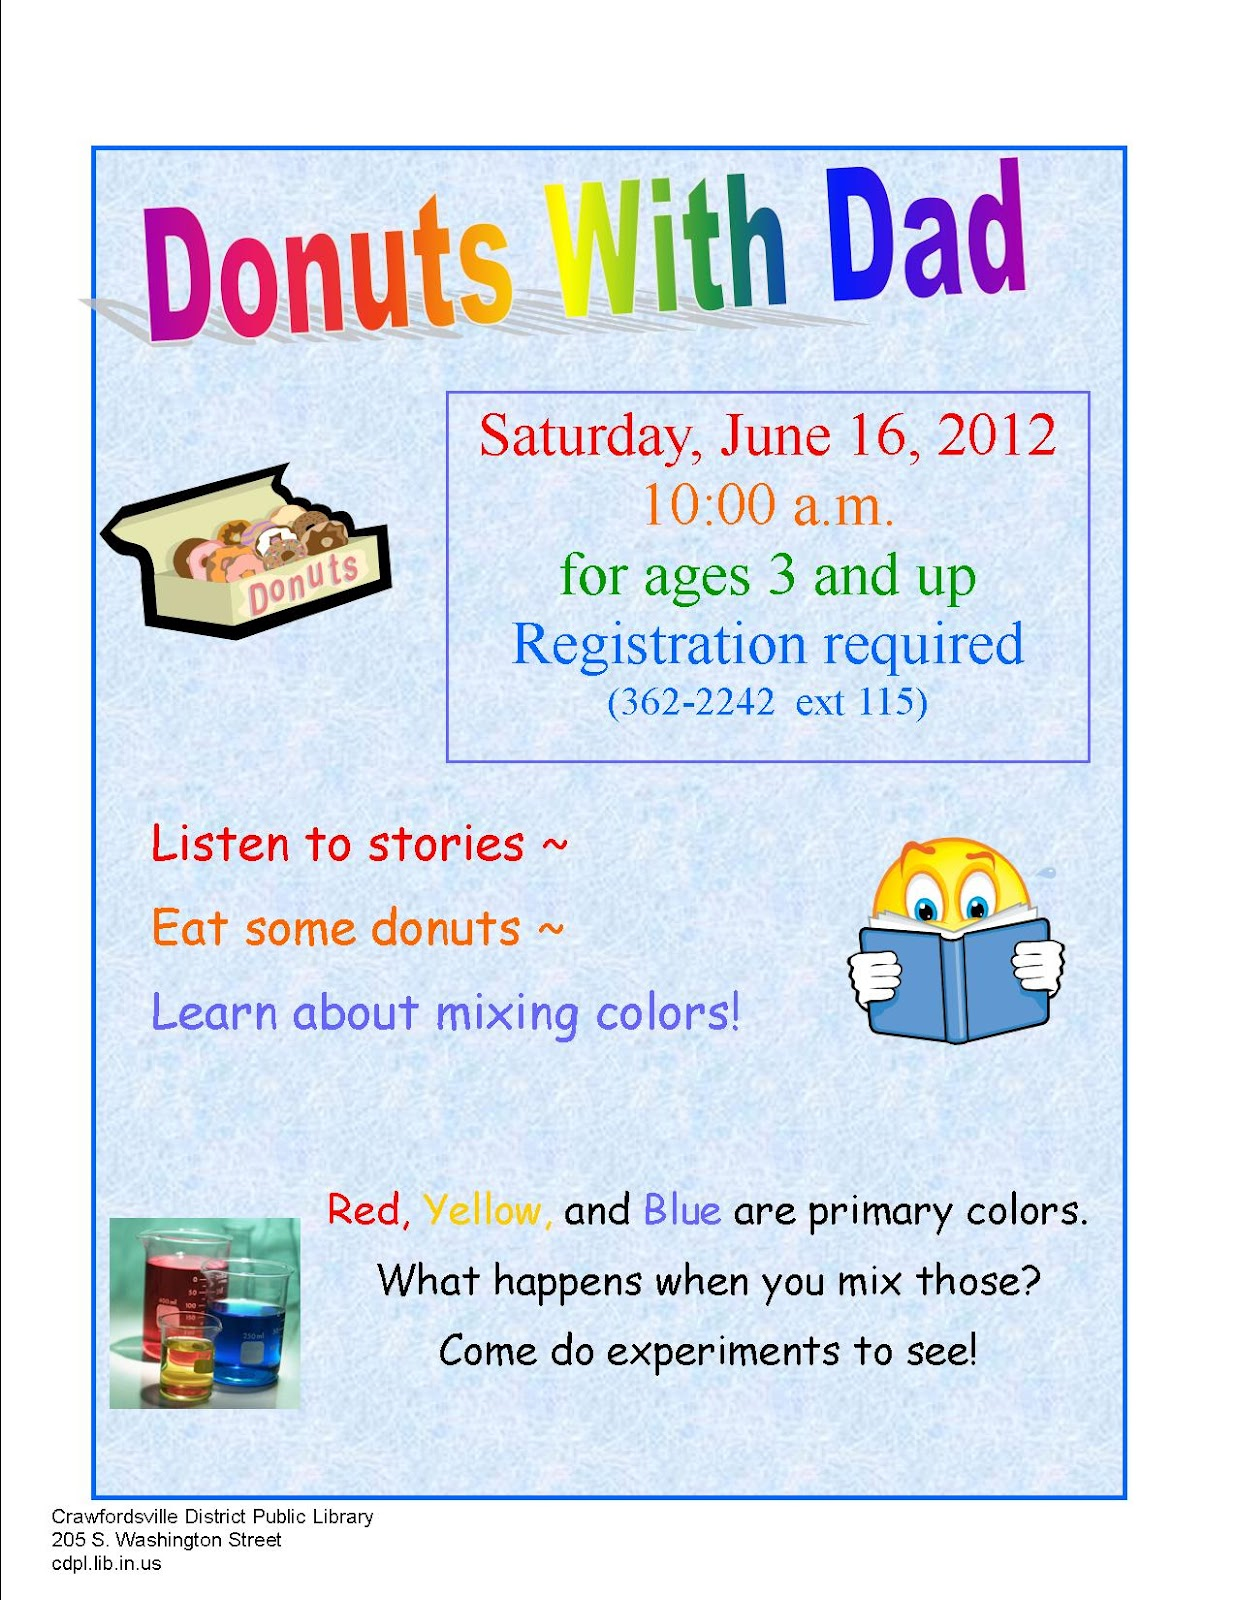 CDPL Children's Services: Donuts With Dad in June